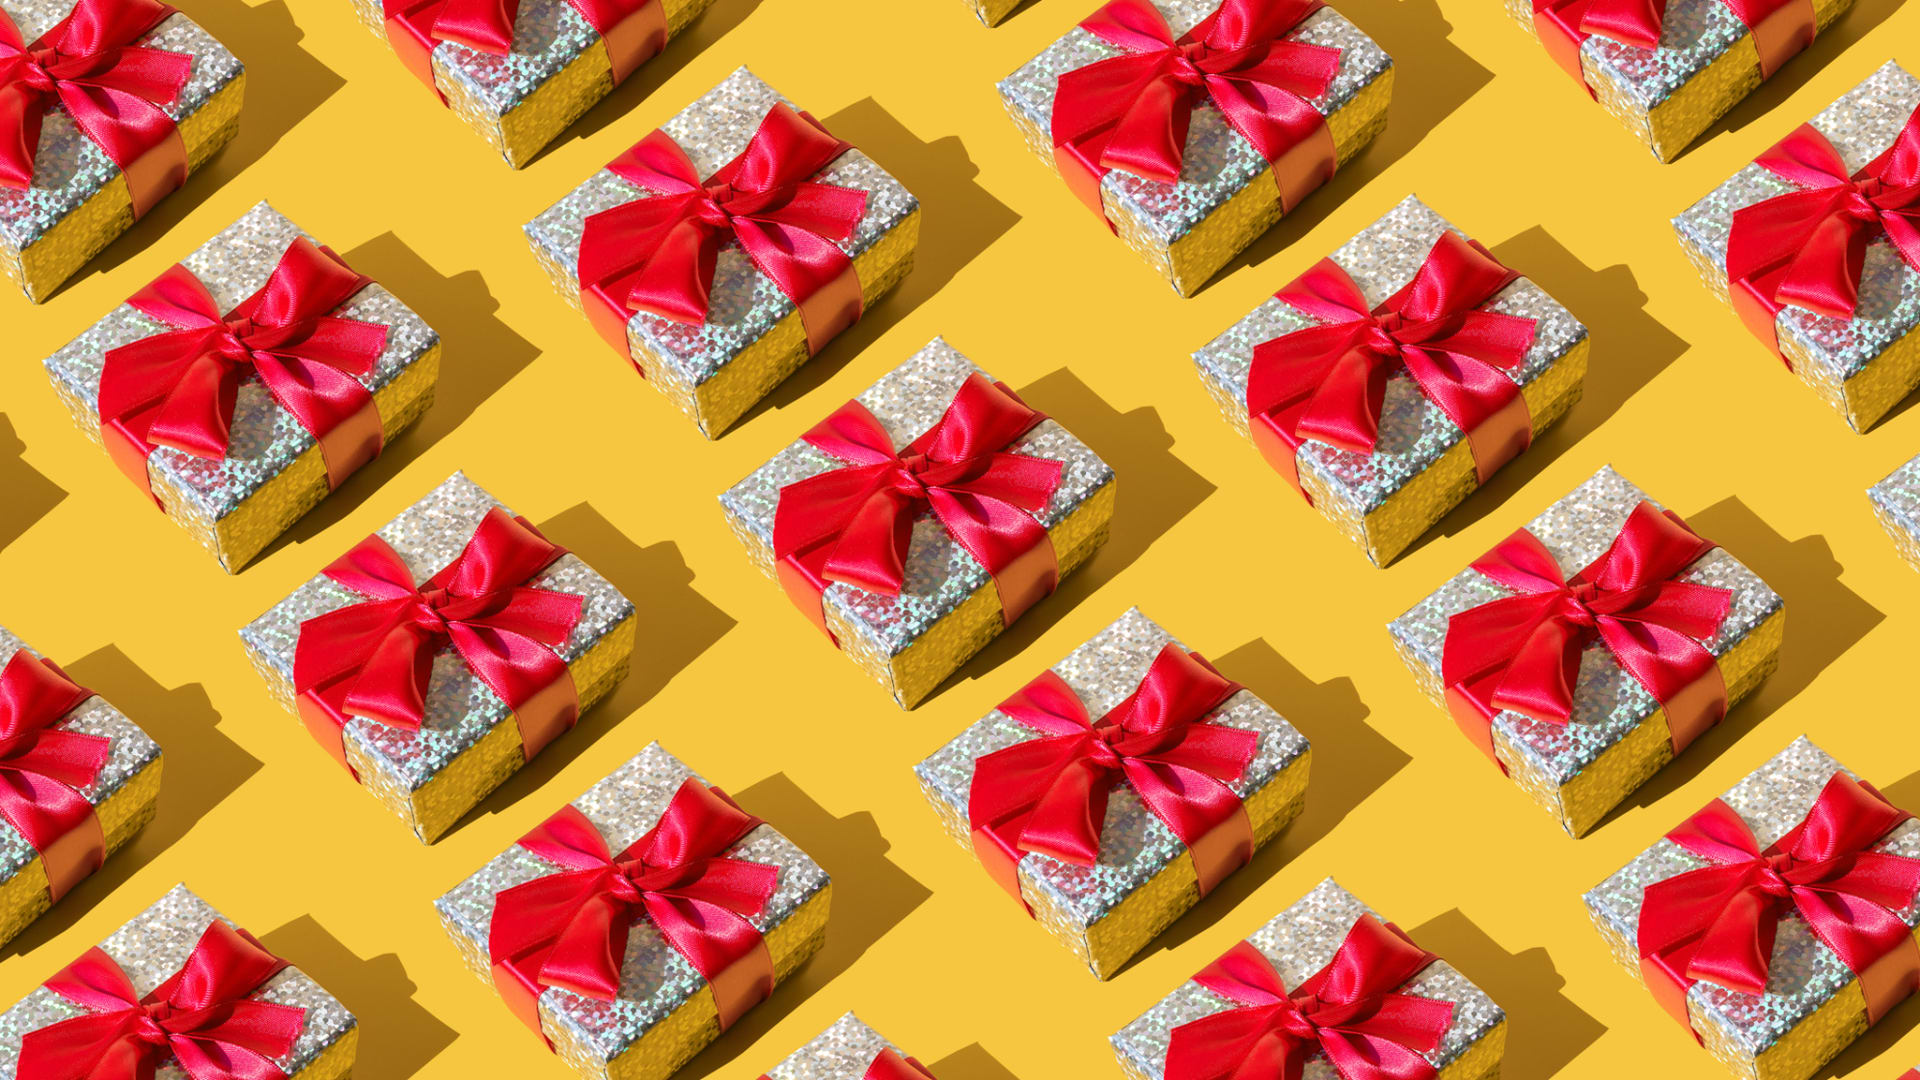 5 Expensive-Looking but Cheapish Gifts That They'll Love